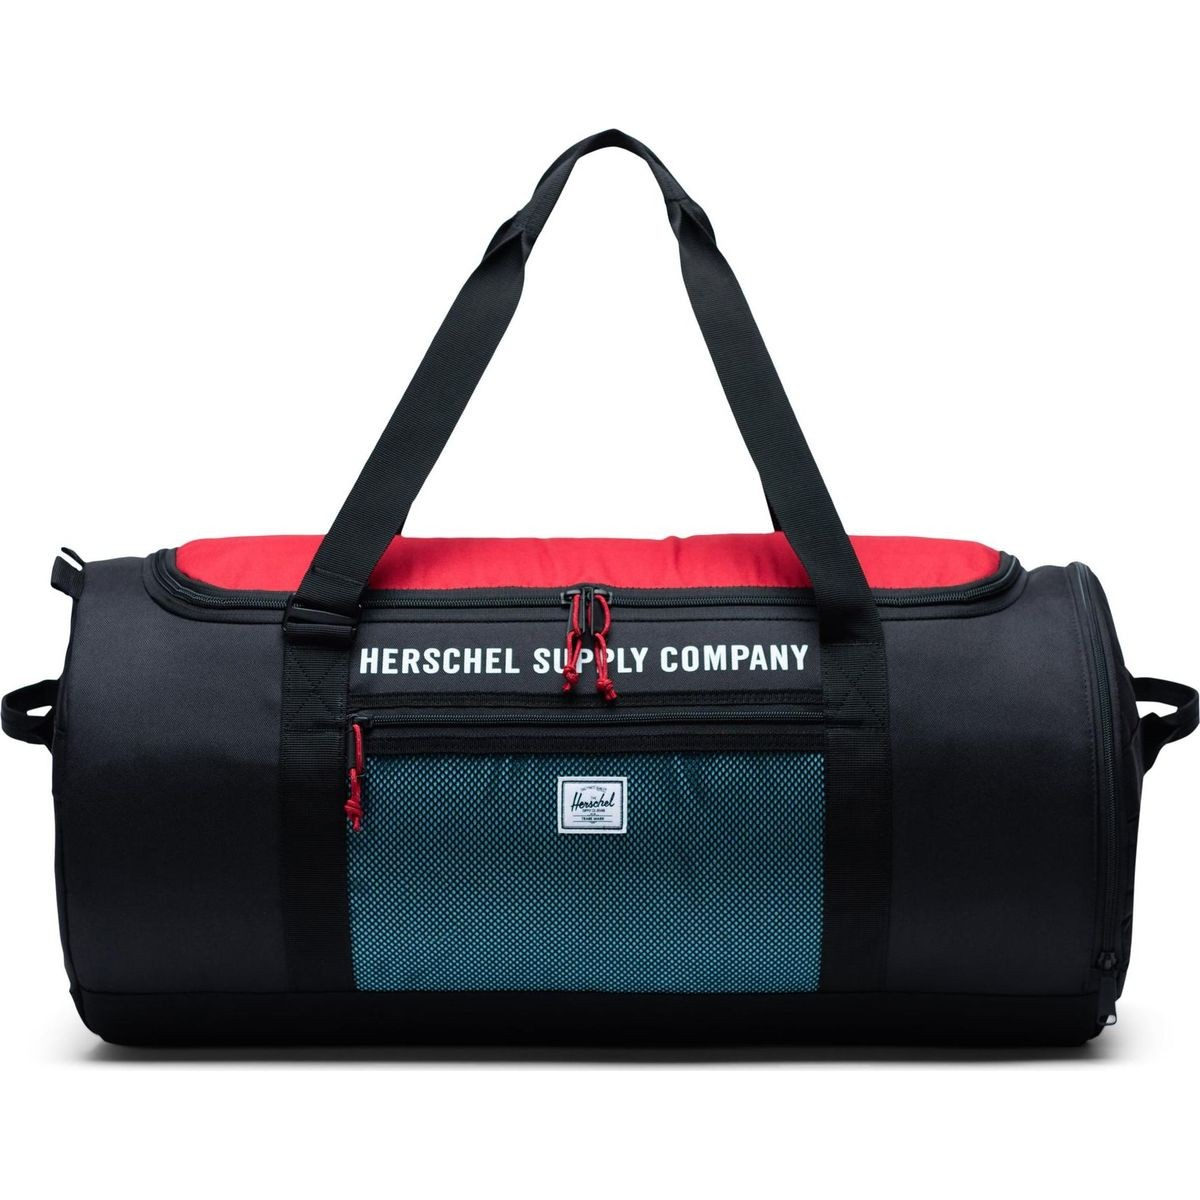 Herschel Supply Sutton Carry All 50l Duffle Bag Mesh Black Red On